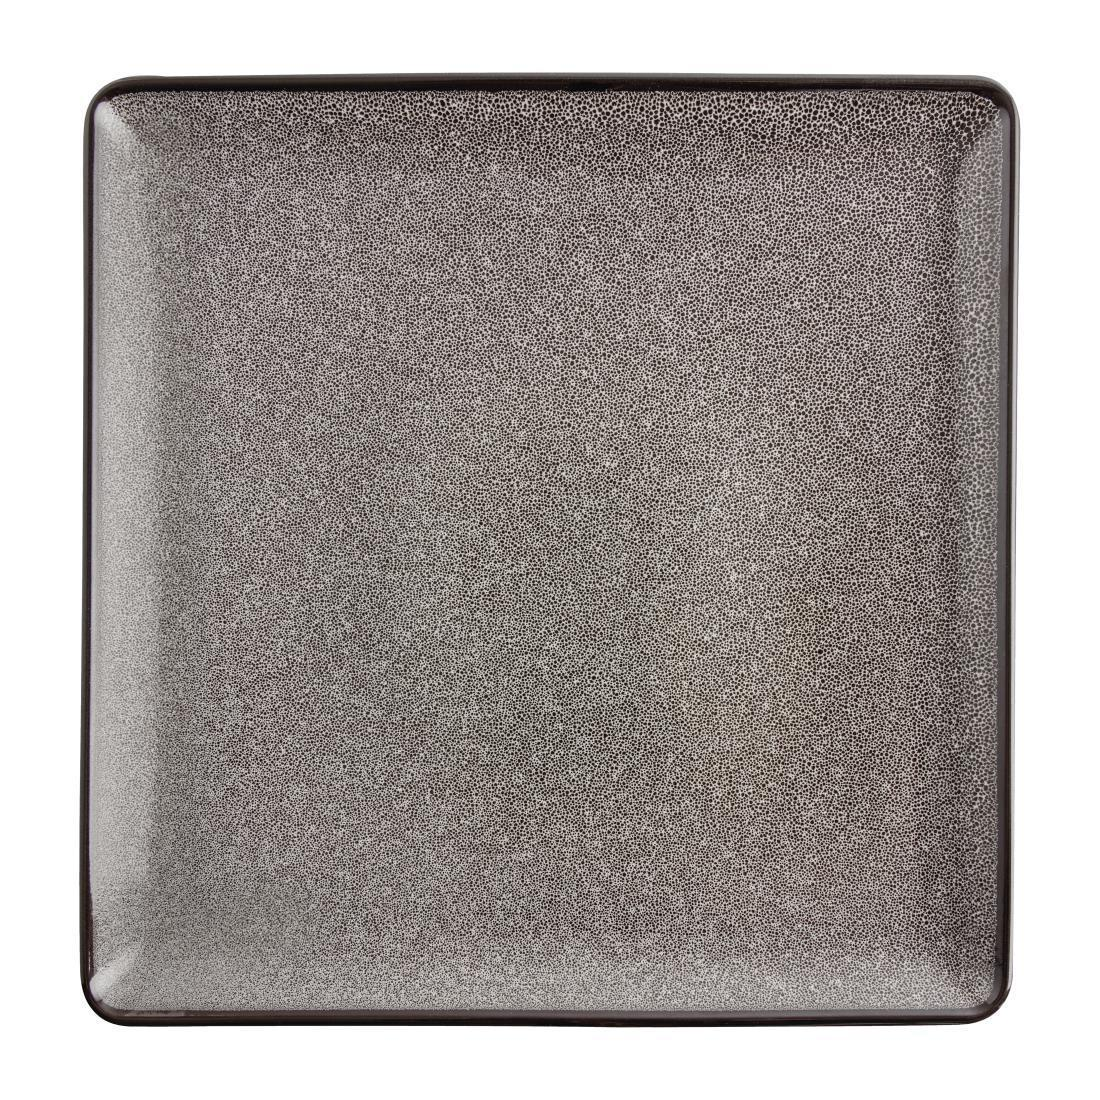 Olympia Mineral Square Plate 265mm